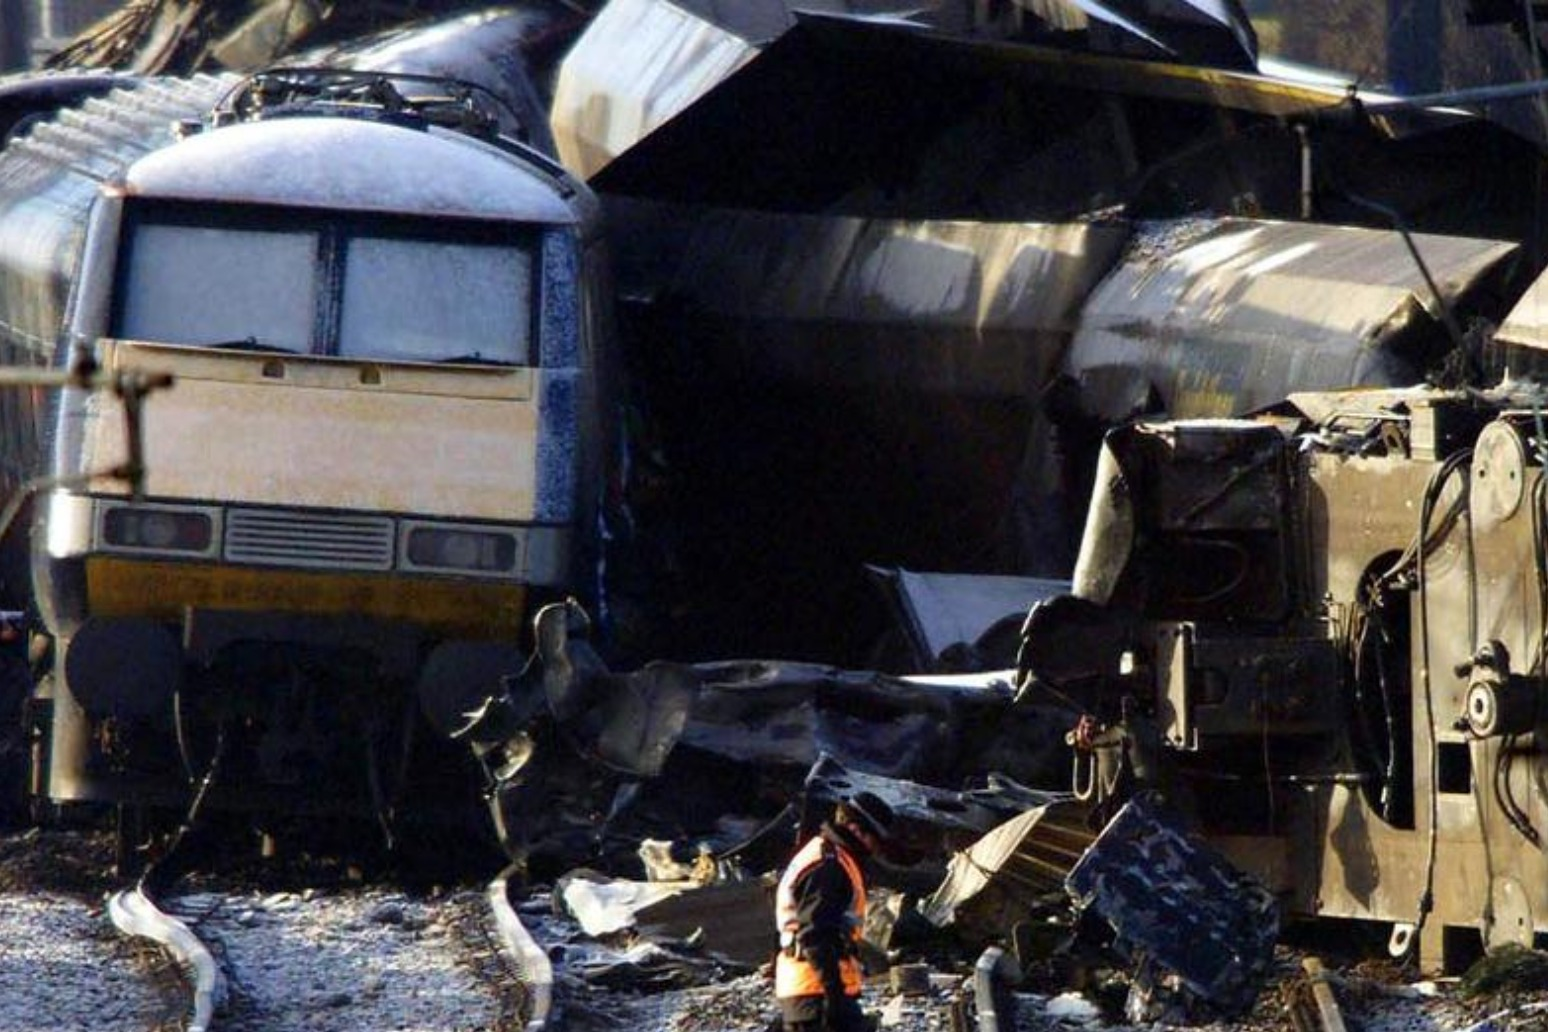 Events planned to mark 20th anniversary of worst rail crash of 21st century